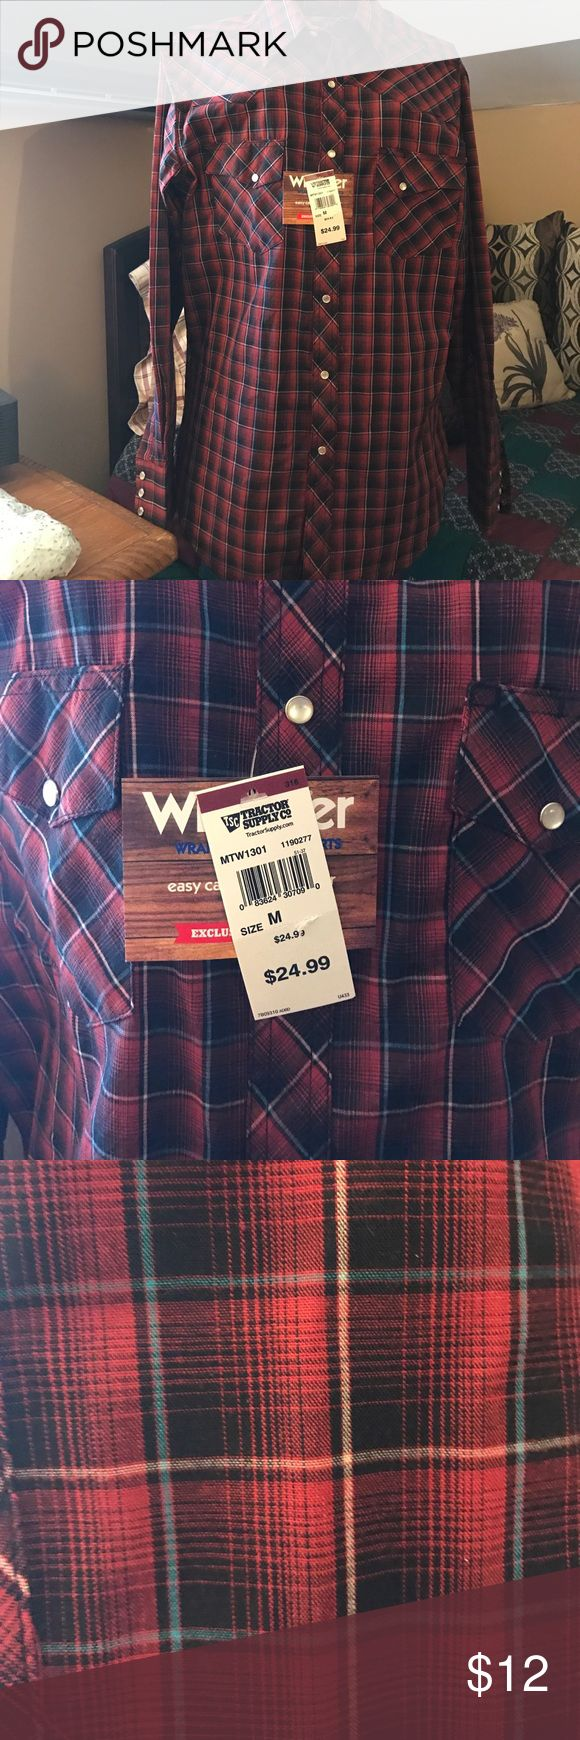 Men's pearl snapped wrangler shirt Men's longsleeve lightweight wrangler shirt with pearl snaps new with tags. Non-smoking home. Wrangler Shirts Casual Button Down Shirts